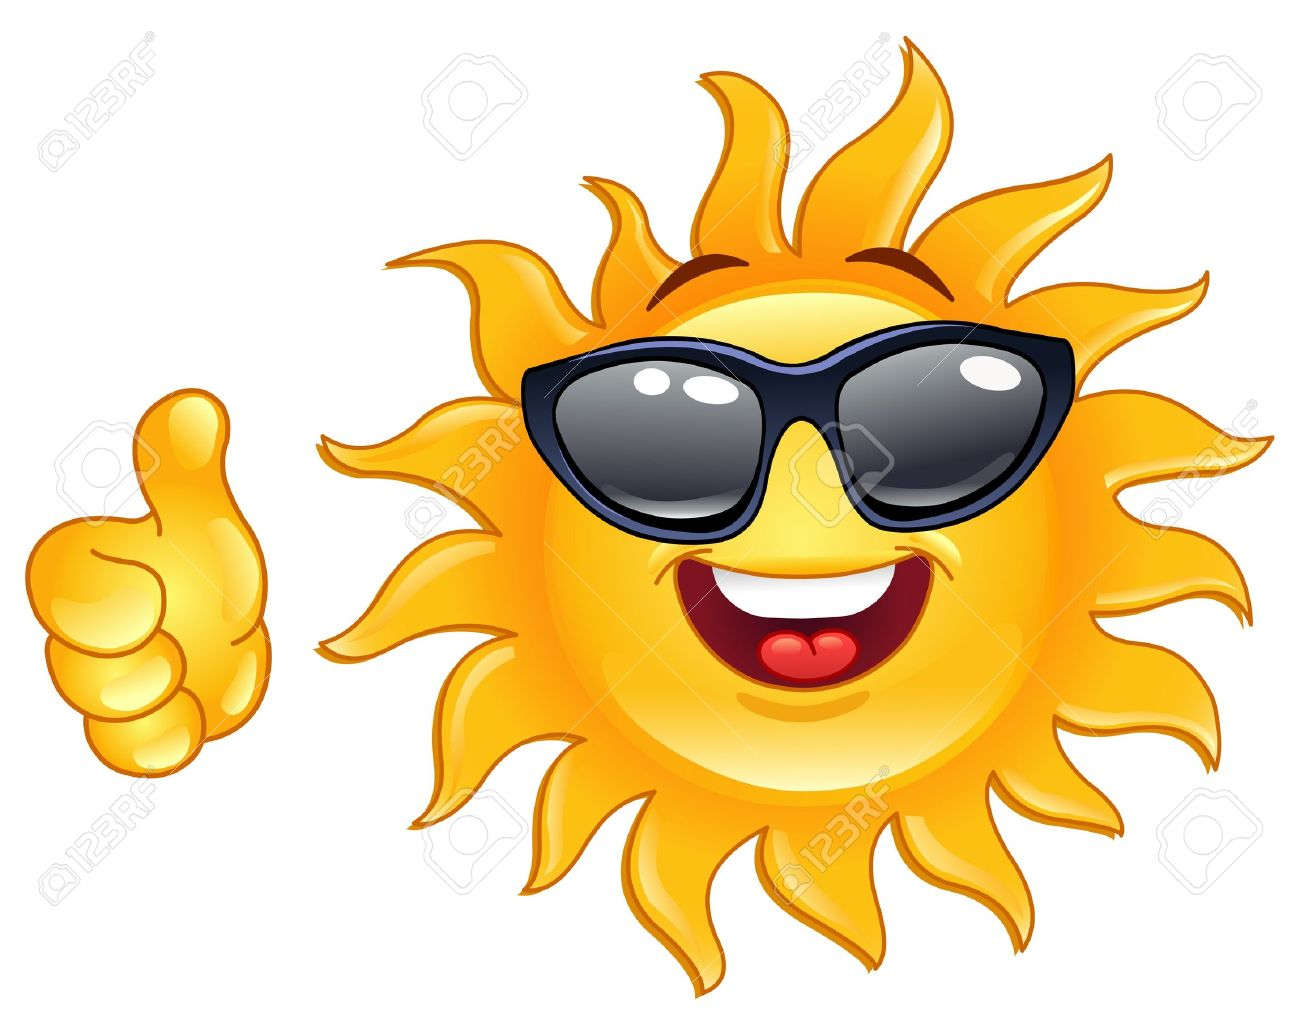 Smiling sun images - Smiling Sun Showing Thumb Up Stock Vector 9735563